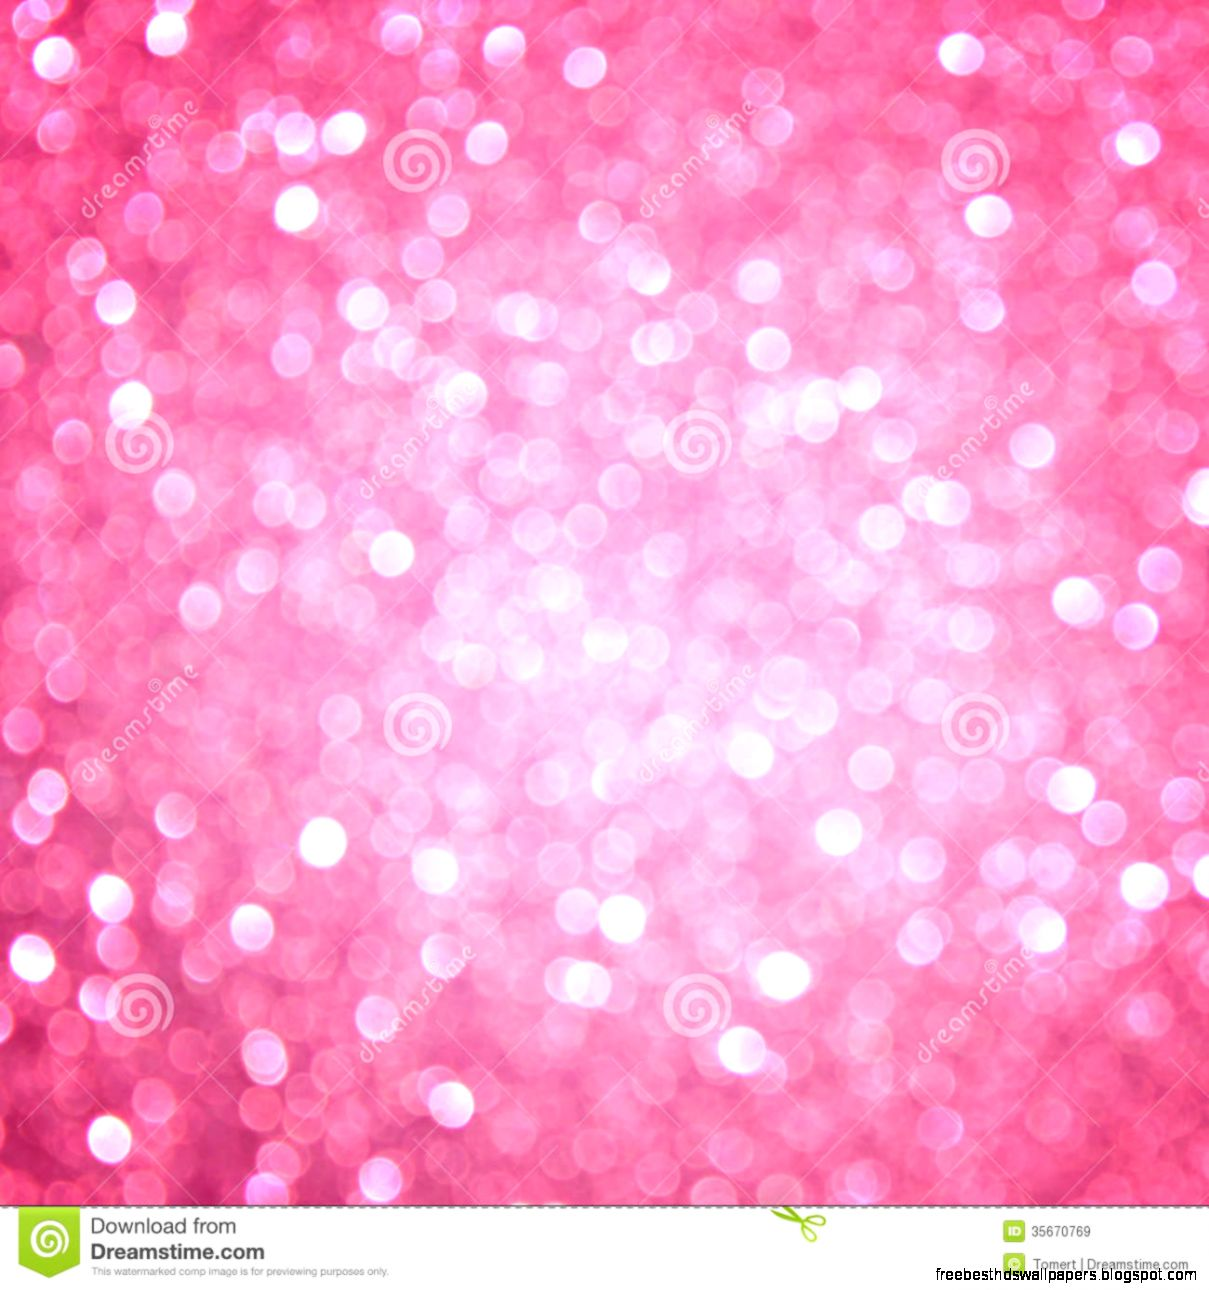 Light pink sparkly backgrounds the for Baby pink glitter wallpaper